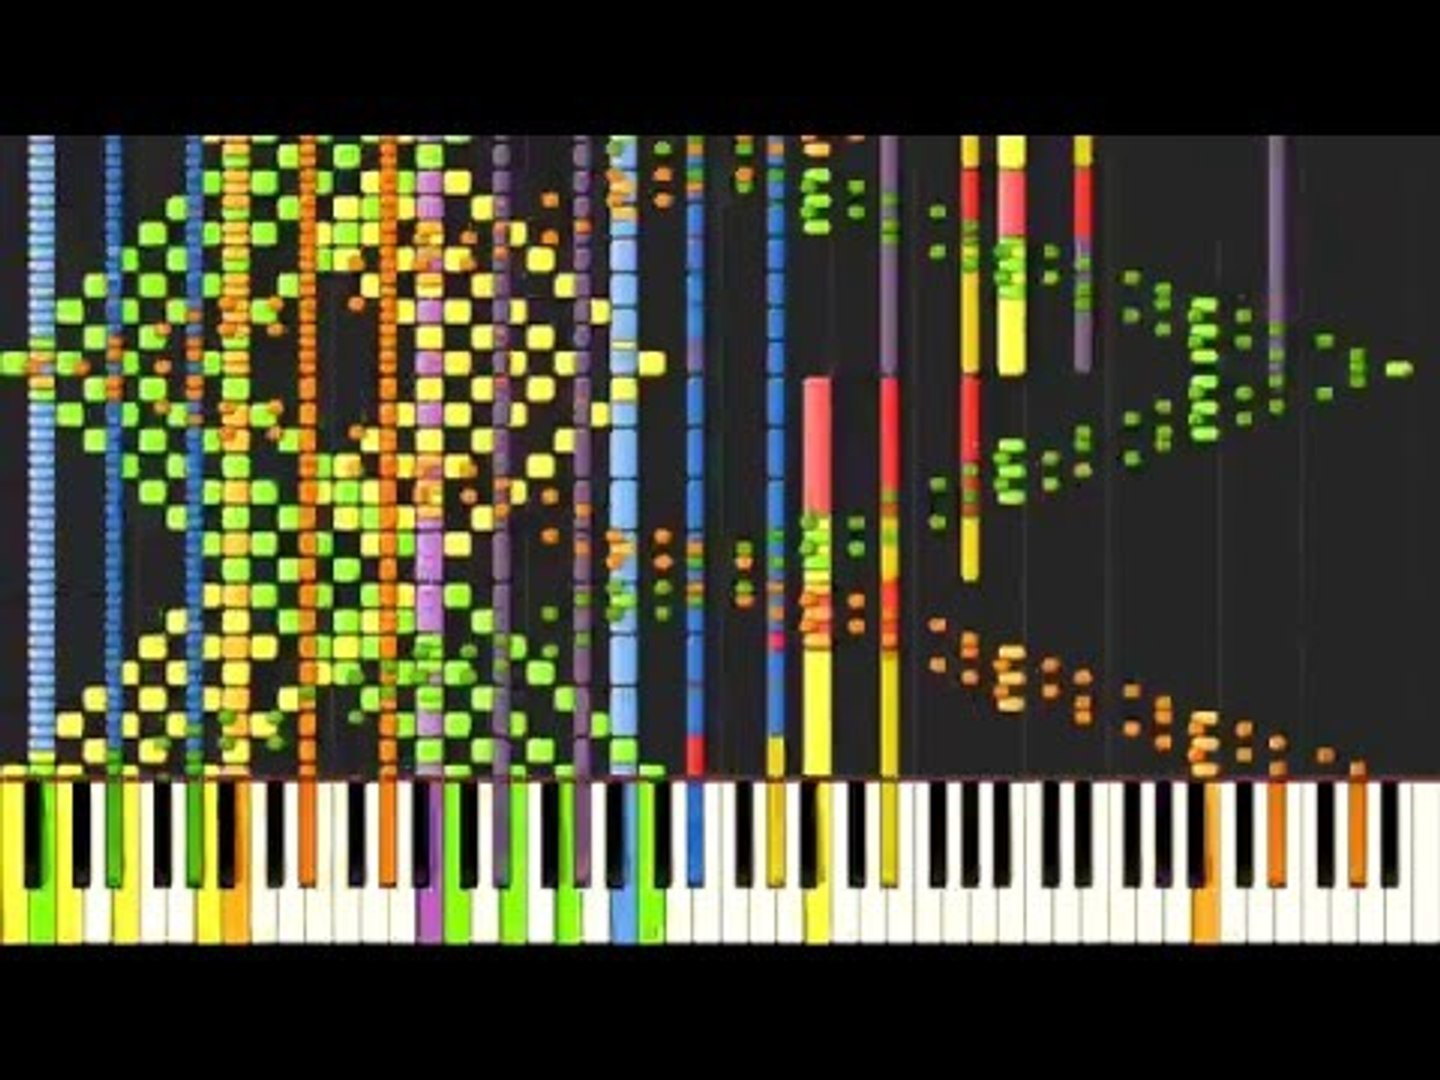 [Black MIDI] Synthesia – Undertale - NGAHHH!! / Spear of Justice 70,000  notes ~ Daniel Gregory